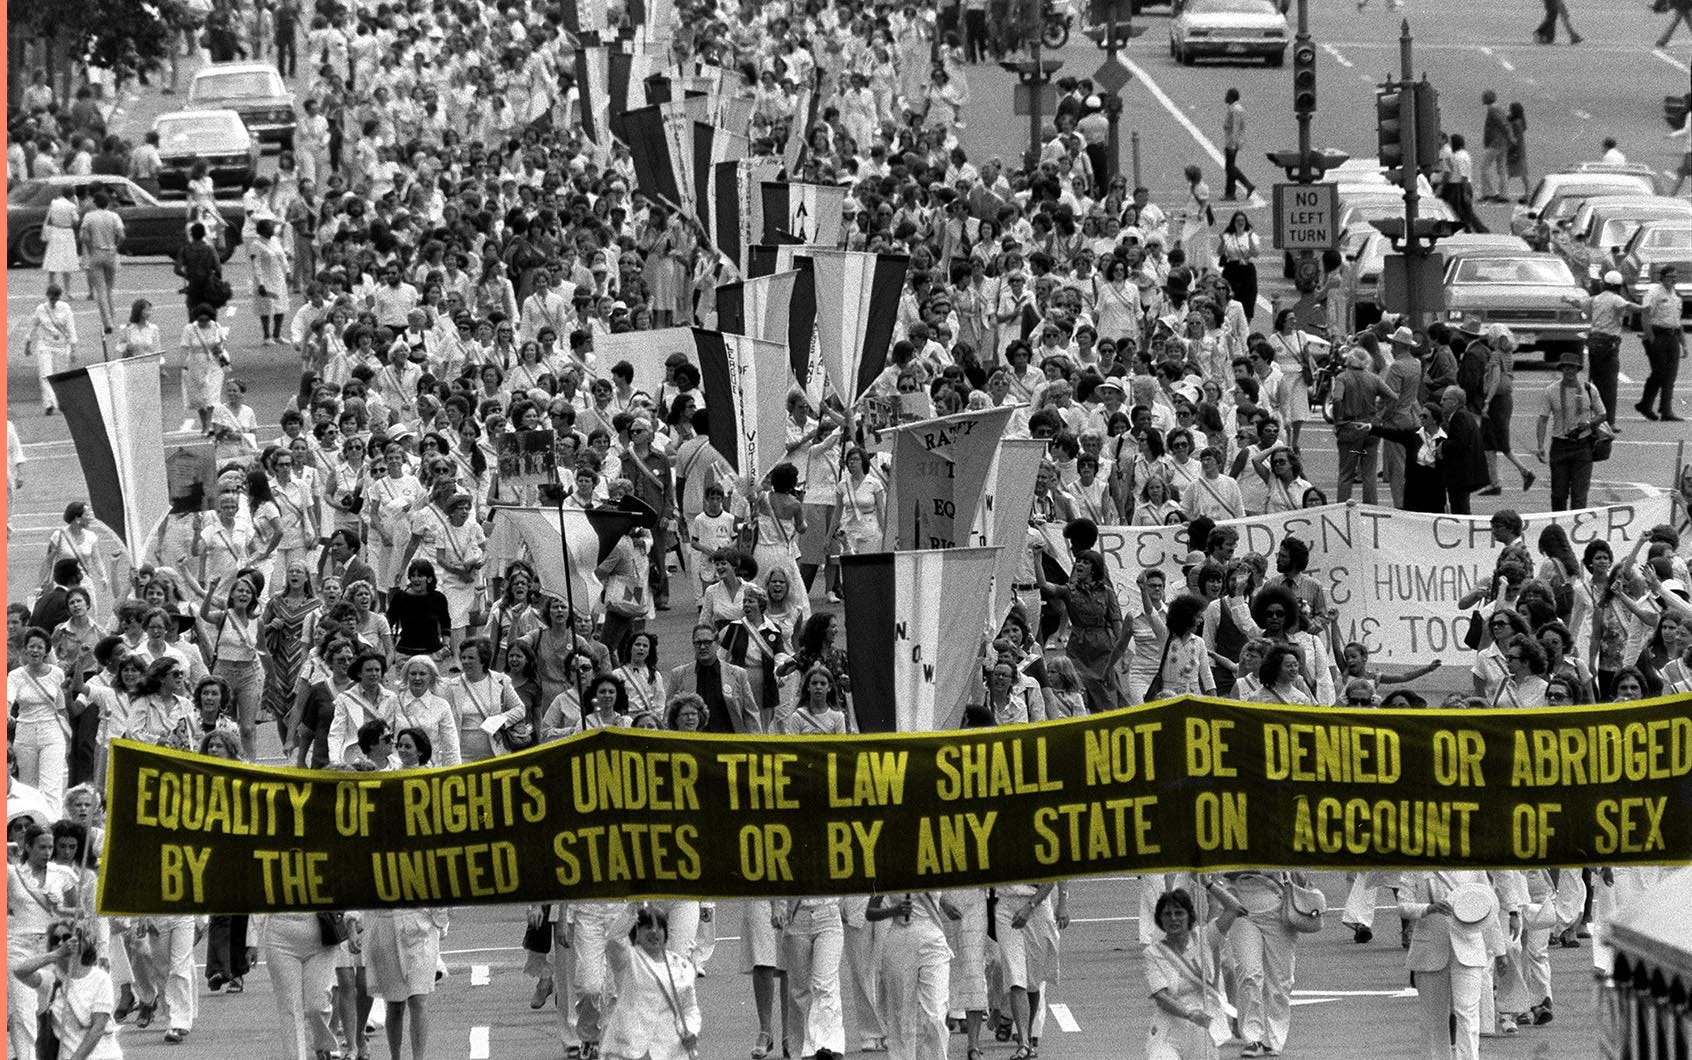 Supporters of the Equal Rights Amendment carry a banner down Pennsylvania Avenue in Washington on Aug. 26, 1977. The march followed a ceremony in the White House Rose Garden during which President Jimmy Carter signed a Women's Equality Day proclamation.